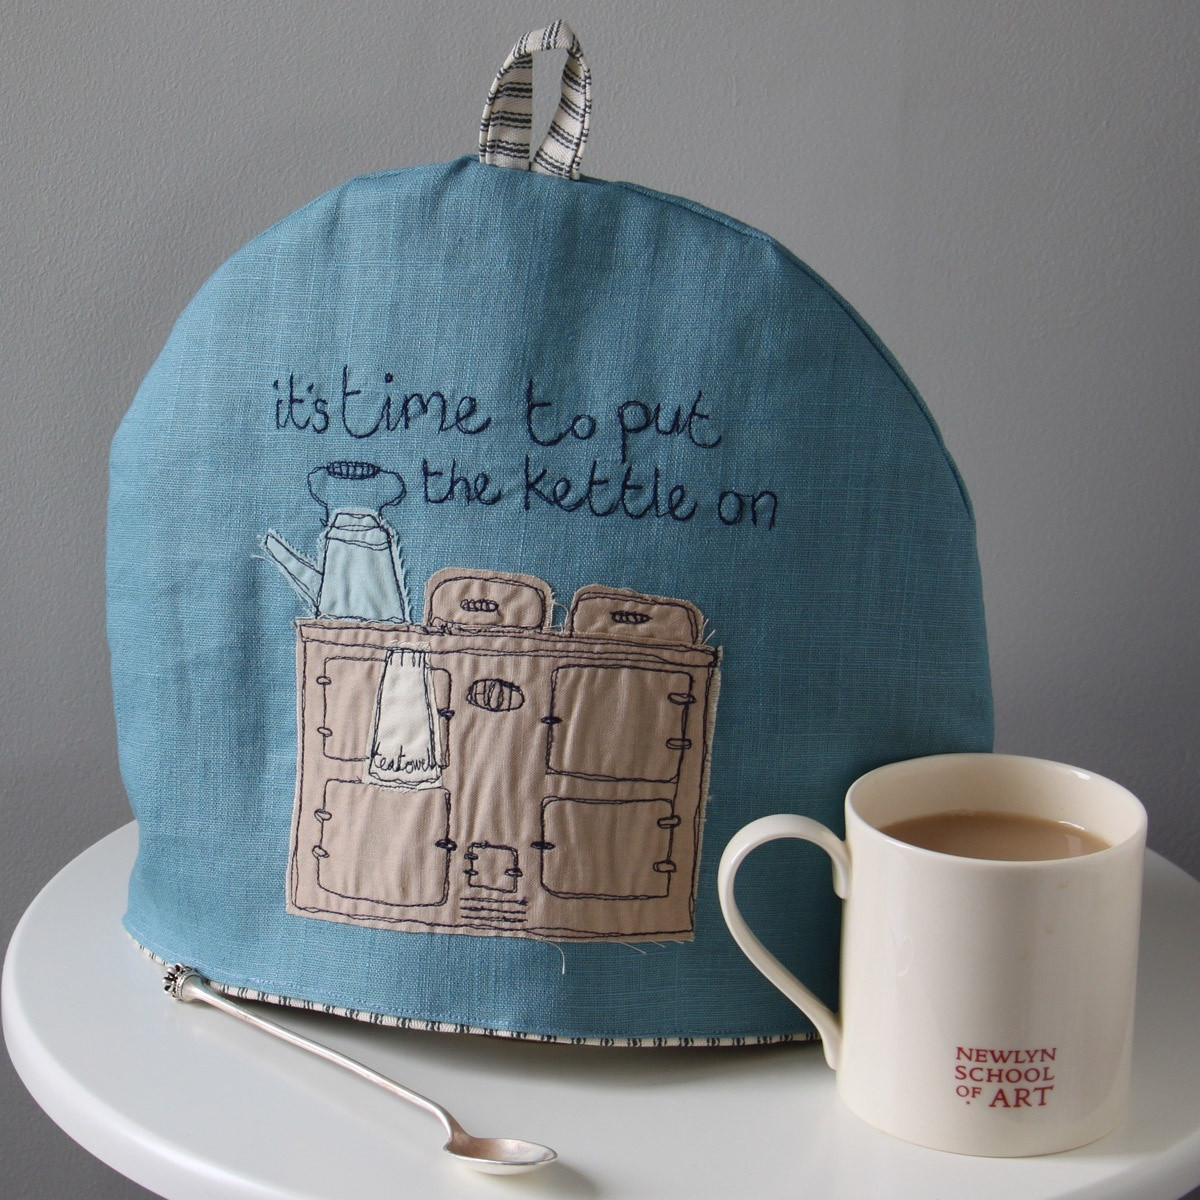 the good life tea cosy by poppy treffry